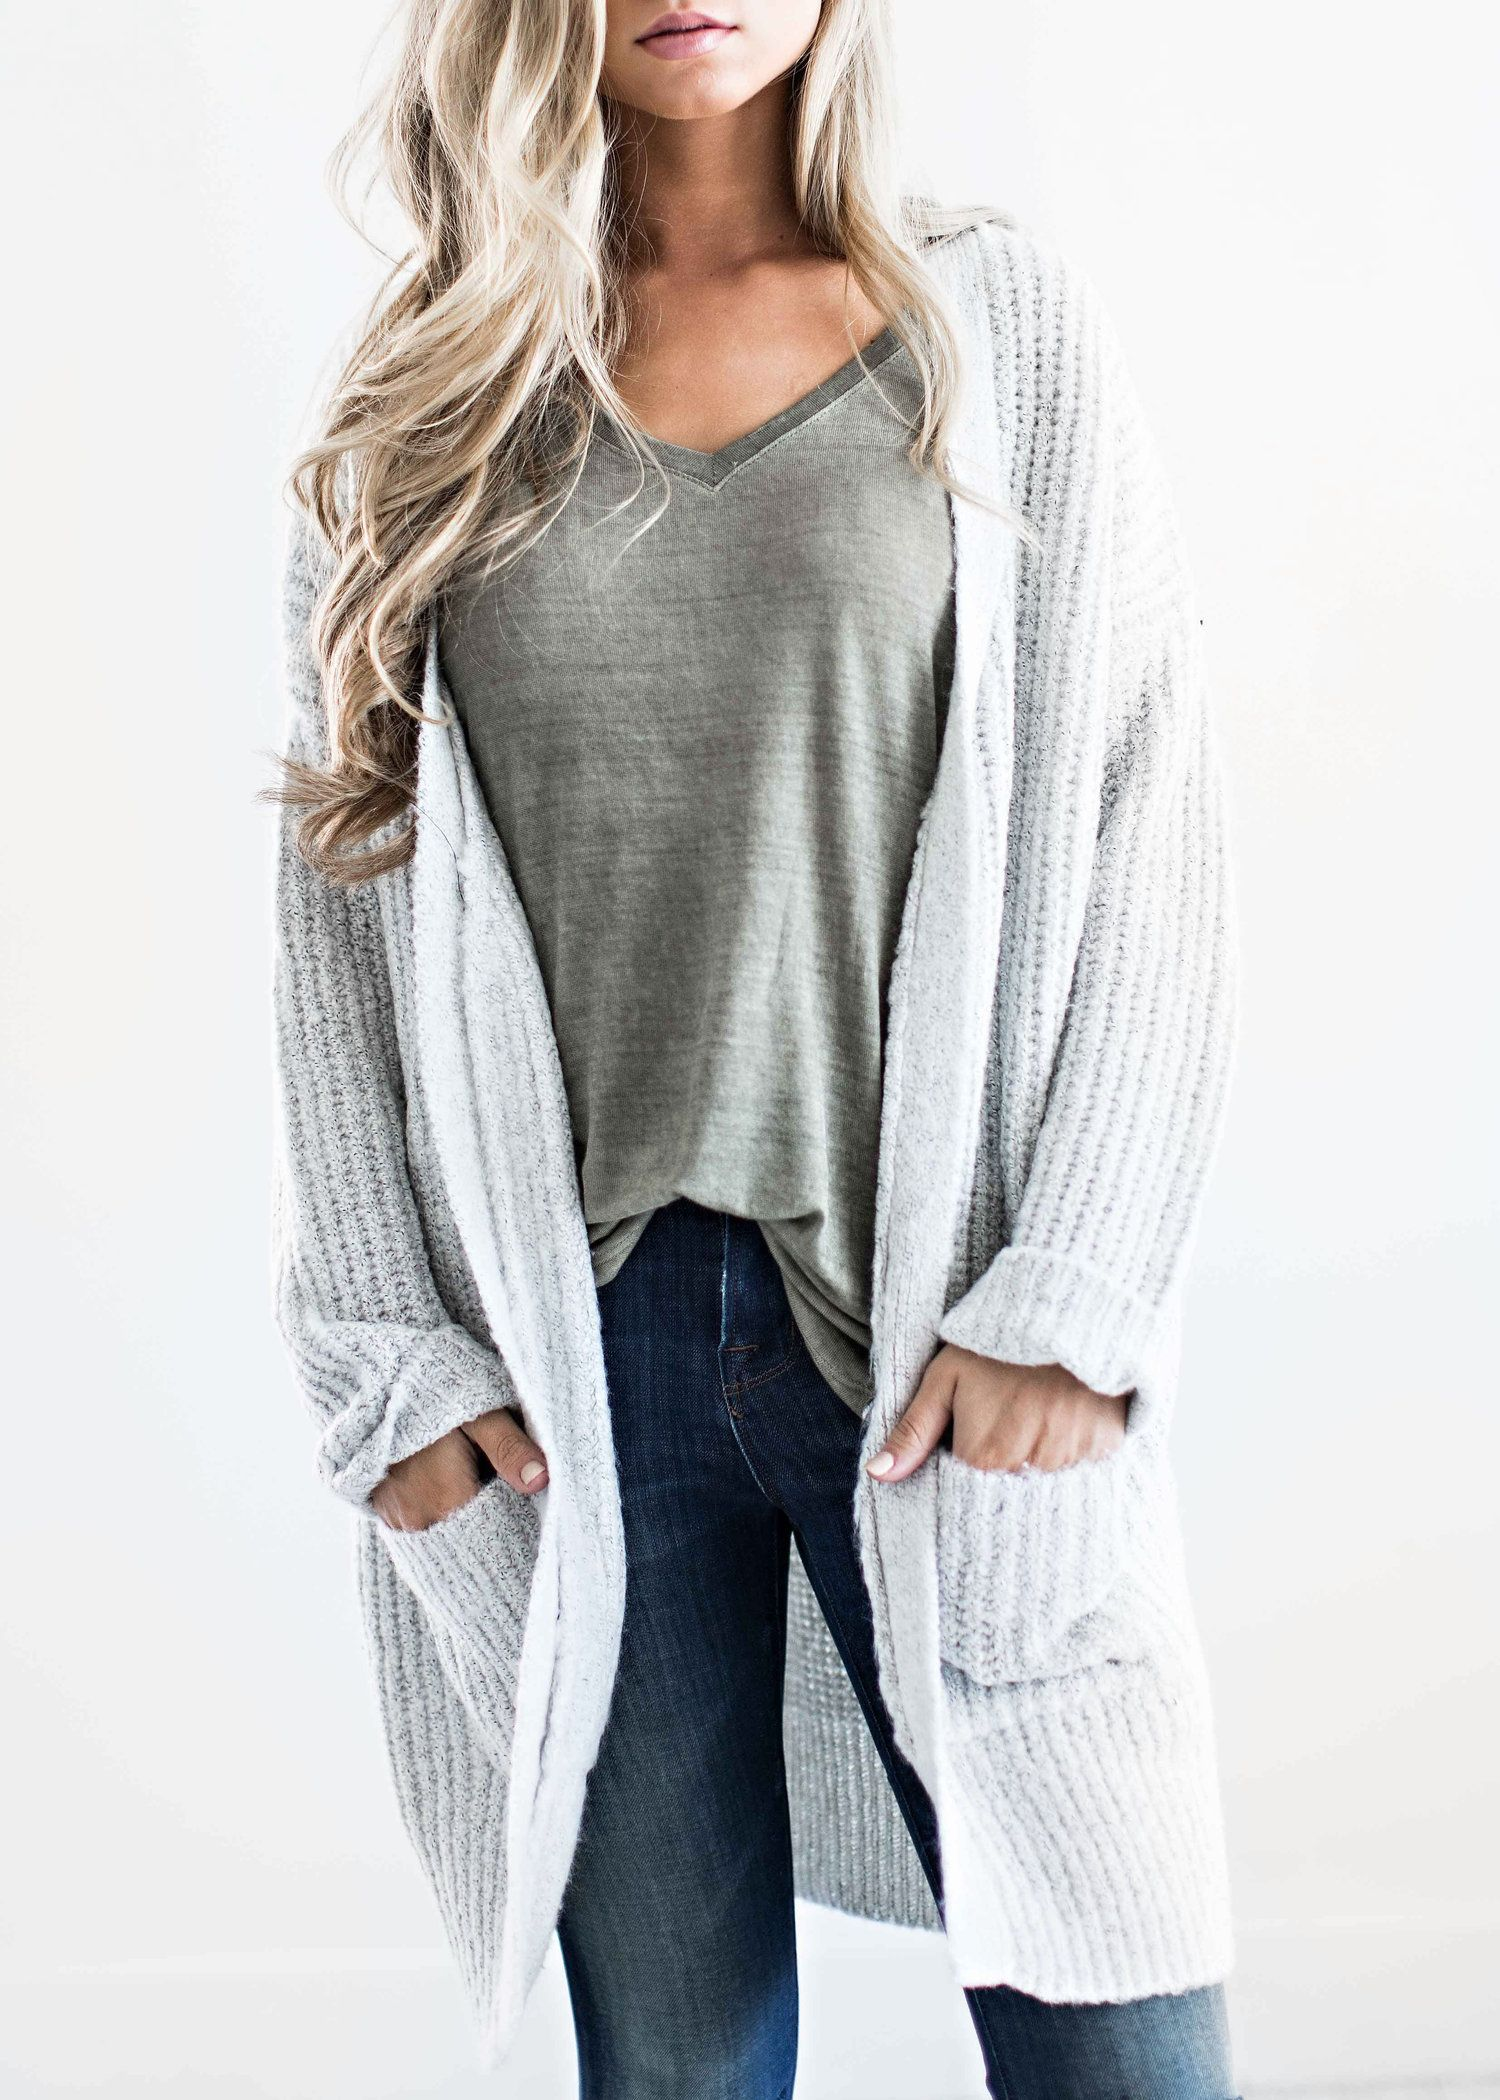 sweaters, light grey sweater, fall fashion, womens fashion, shop ...